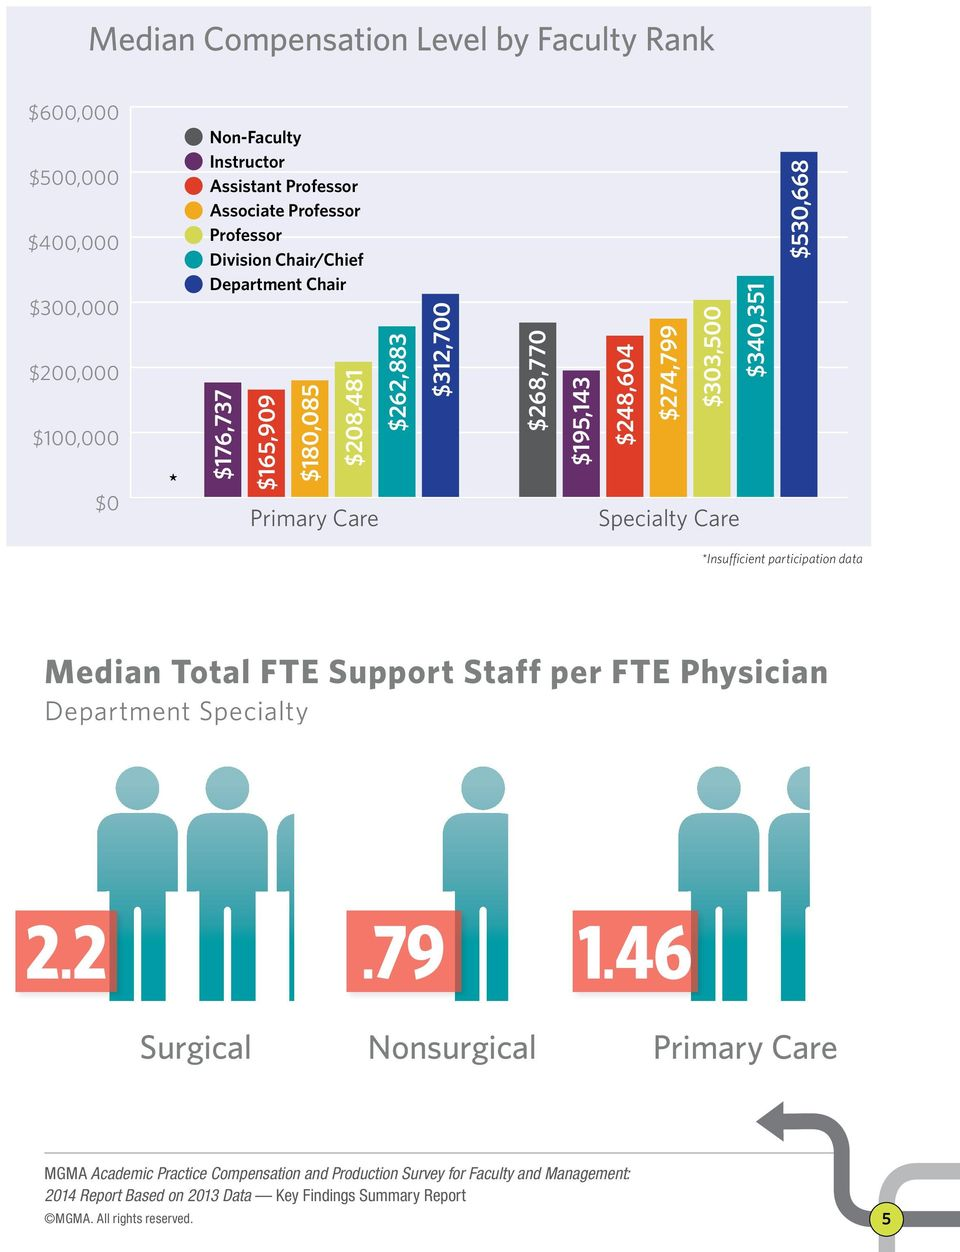 MGMA Academic Practice Compensation and Production Survey